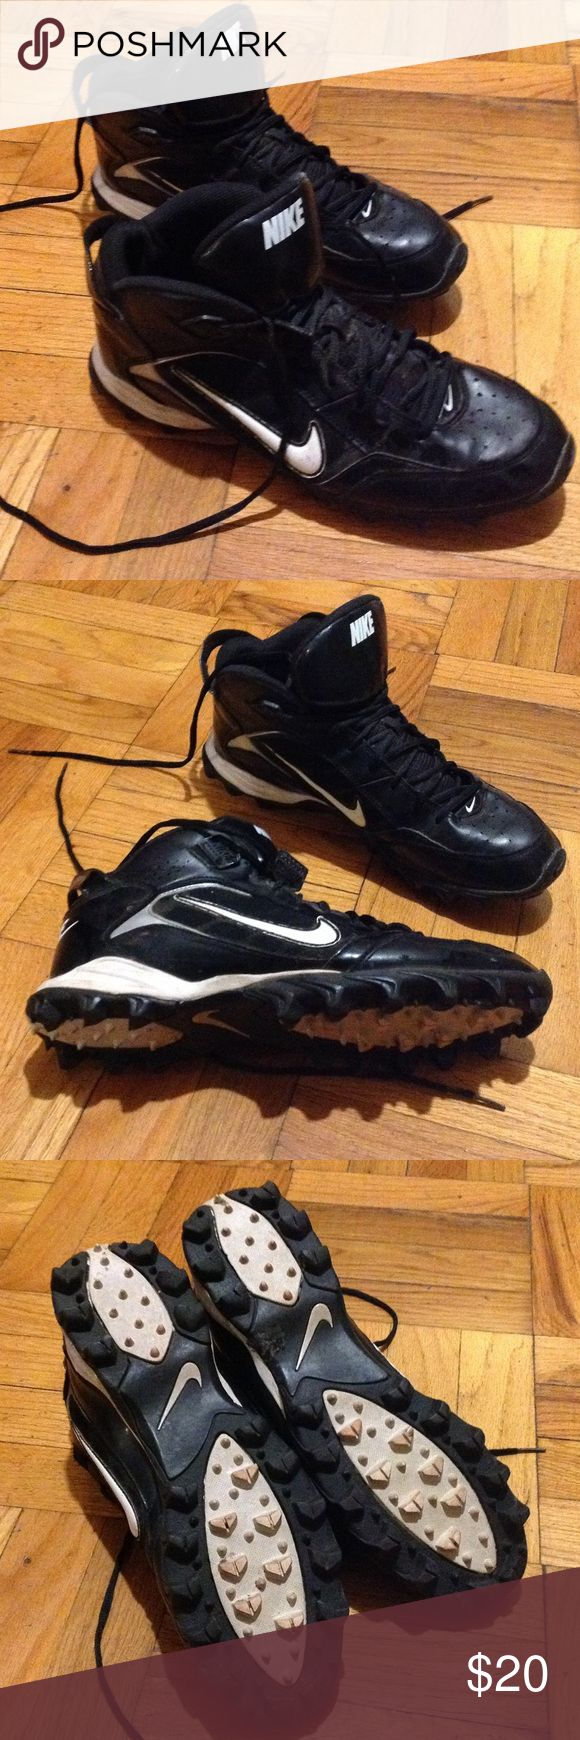 Men's High Top Football Cleats These high top cleats were used for a very short season! Great condition inside and out. Nike Shoes Athletic Shoes